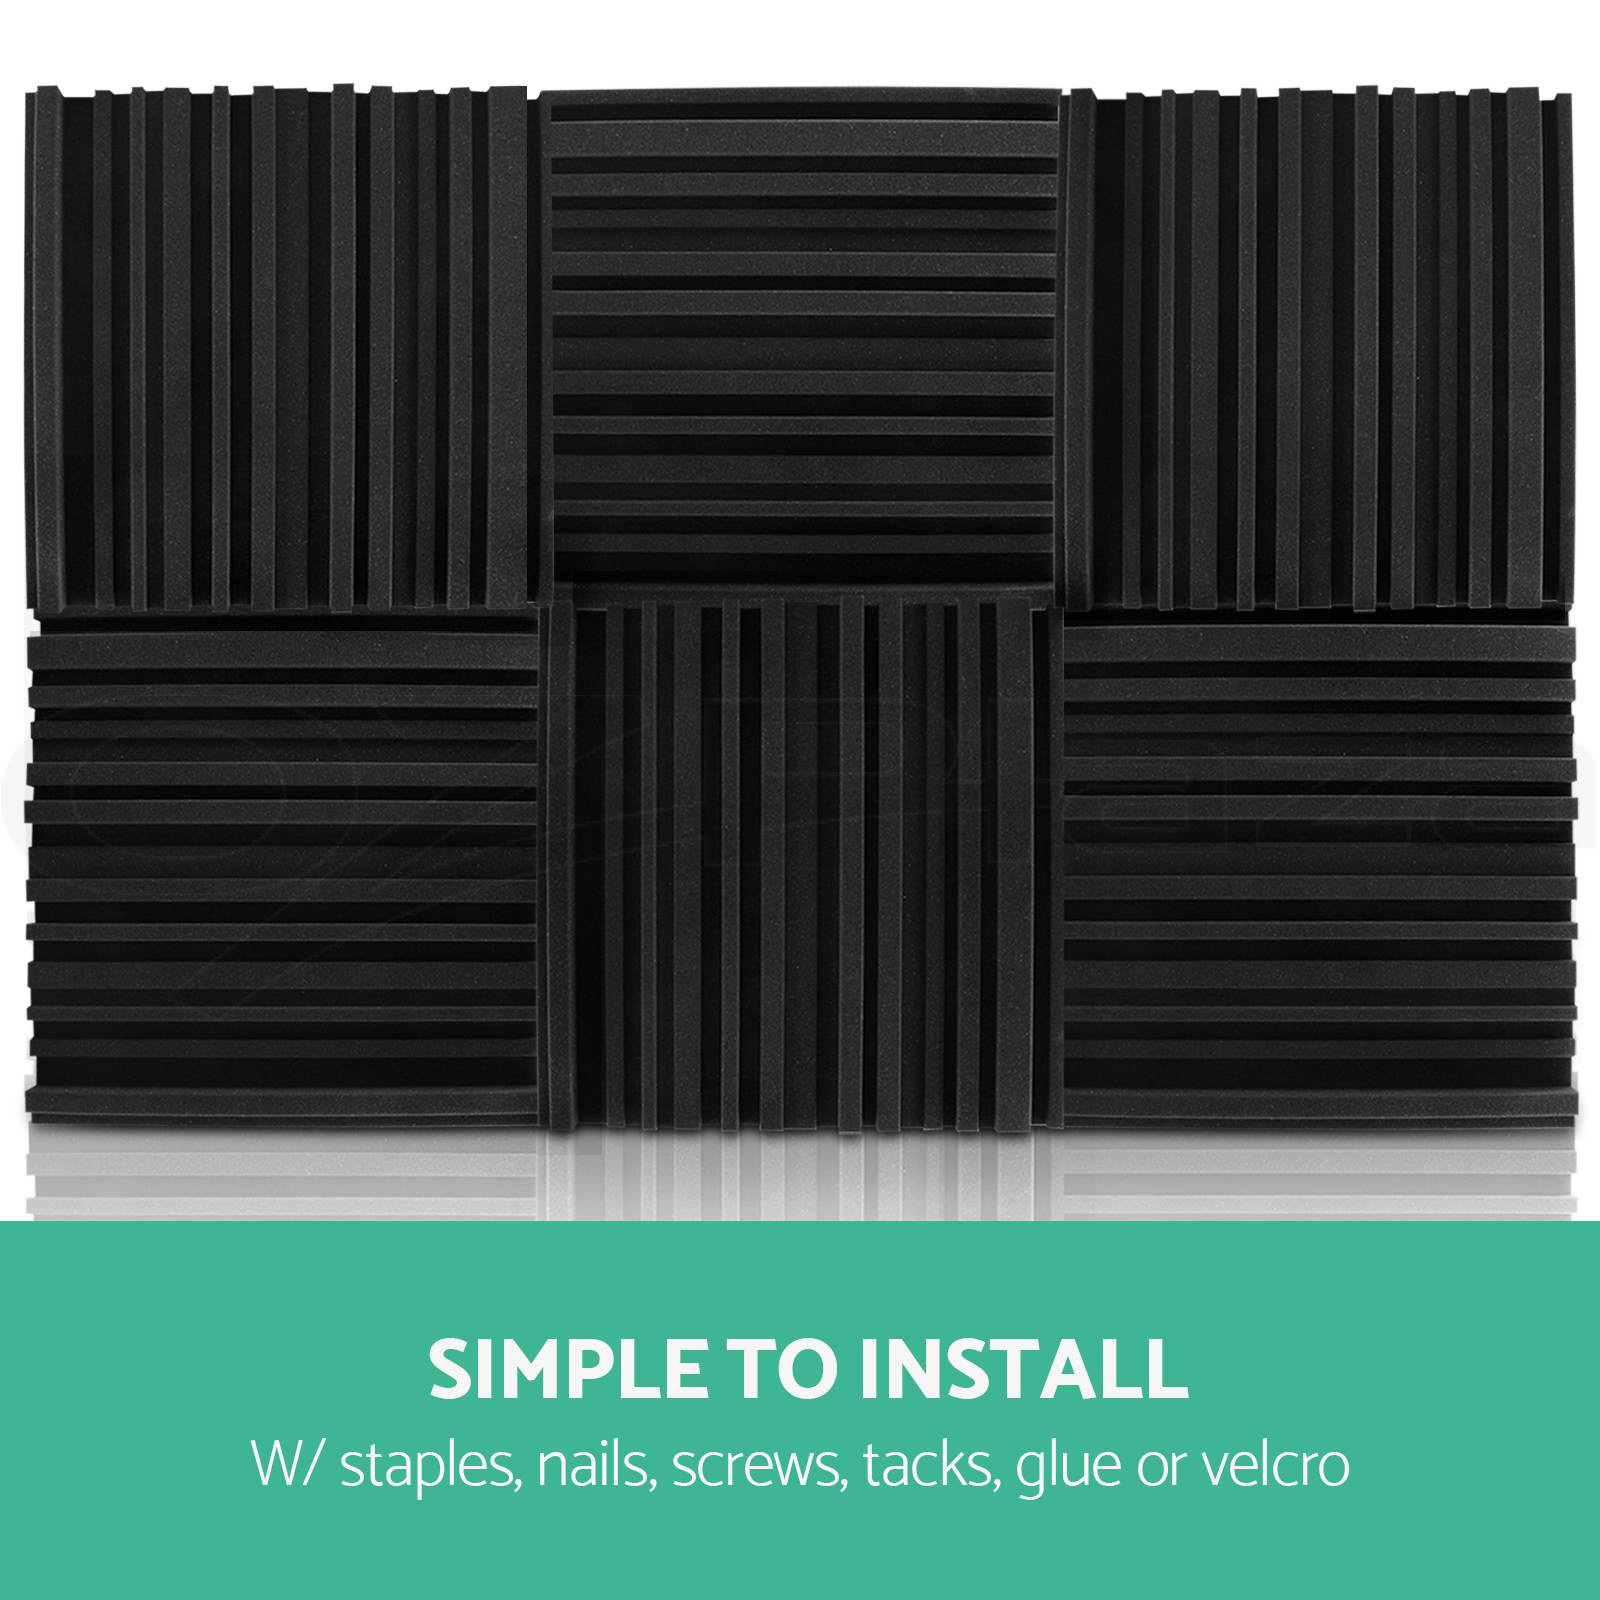 Acoustic Sound Batting : Studio acoustic foam treatment sound proofing panels